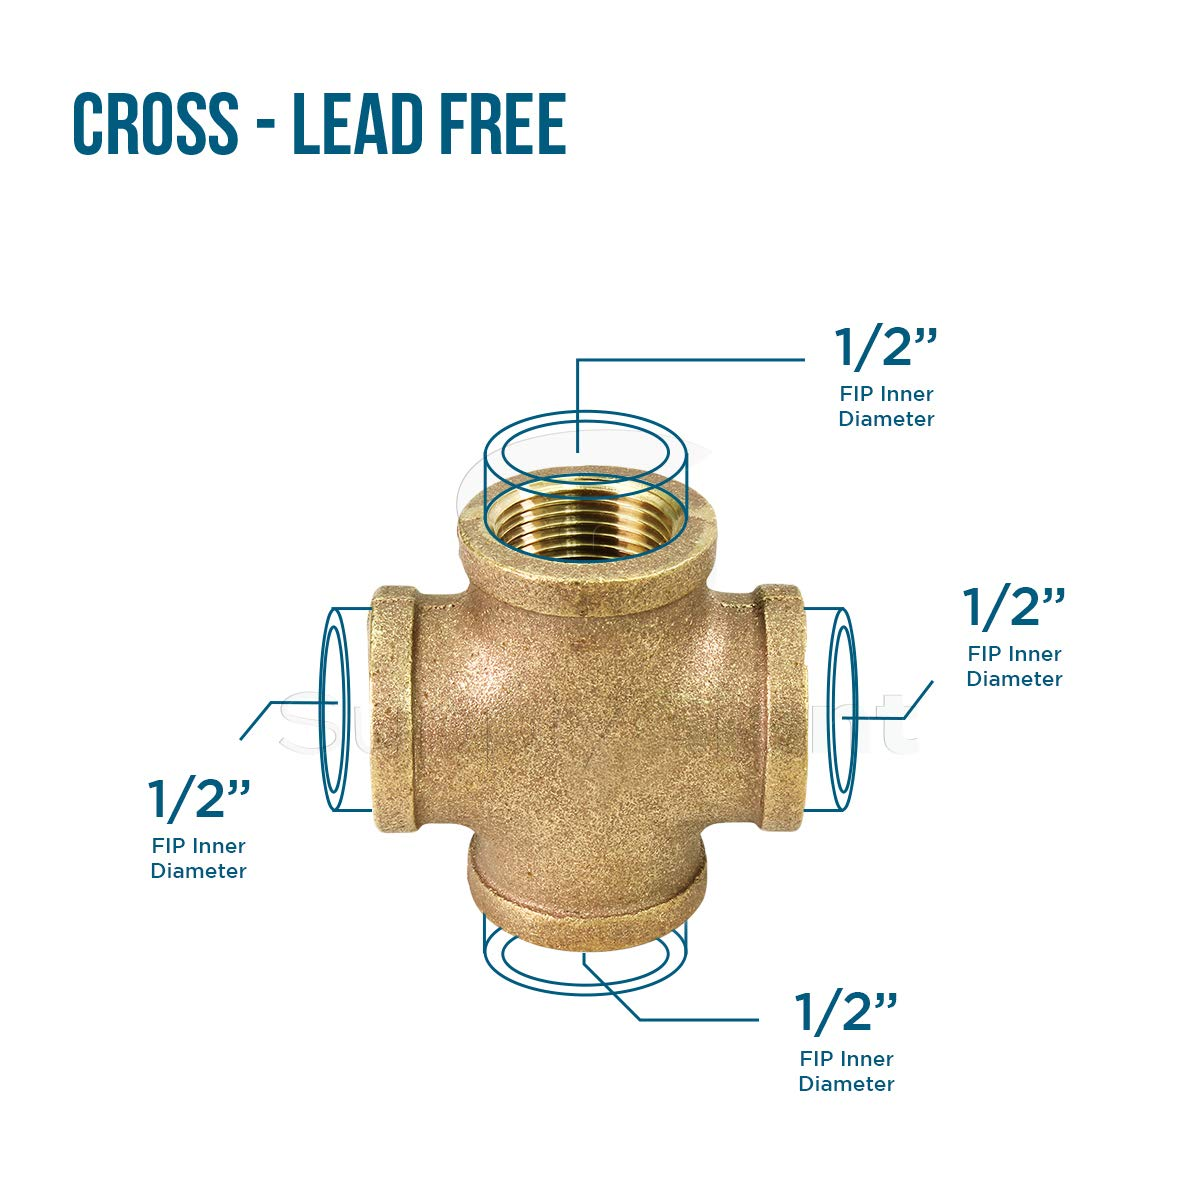 SUPPLY GIANT CSDS0300 1 Inch Lead Free Four Way Brass Cross Fitting with Equally Sized Female Threaded Branches for 125 LB Applications Easy to Install